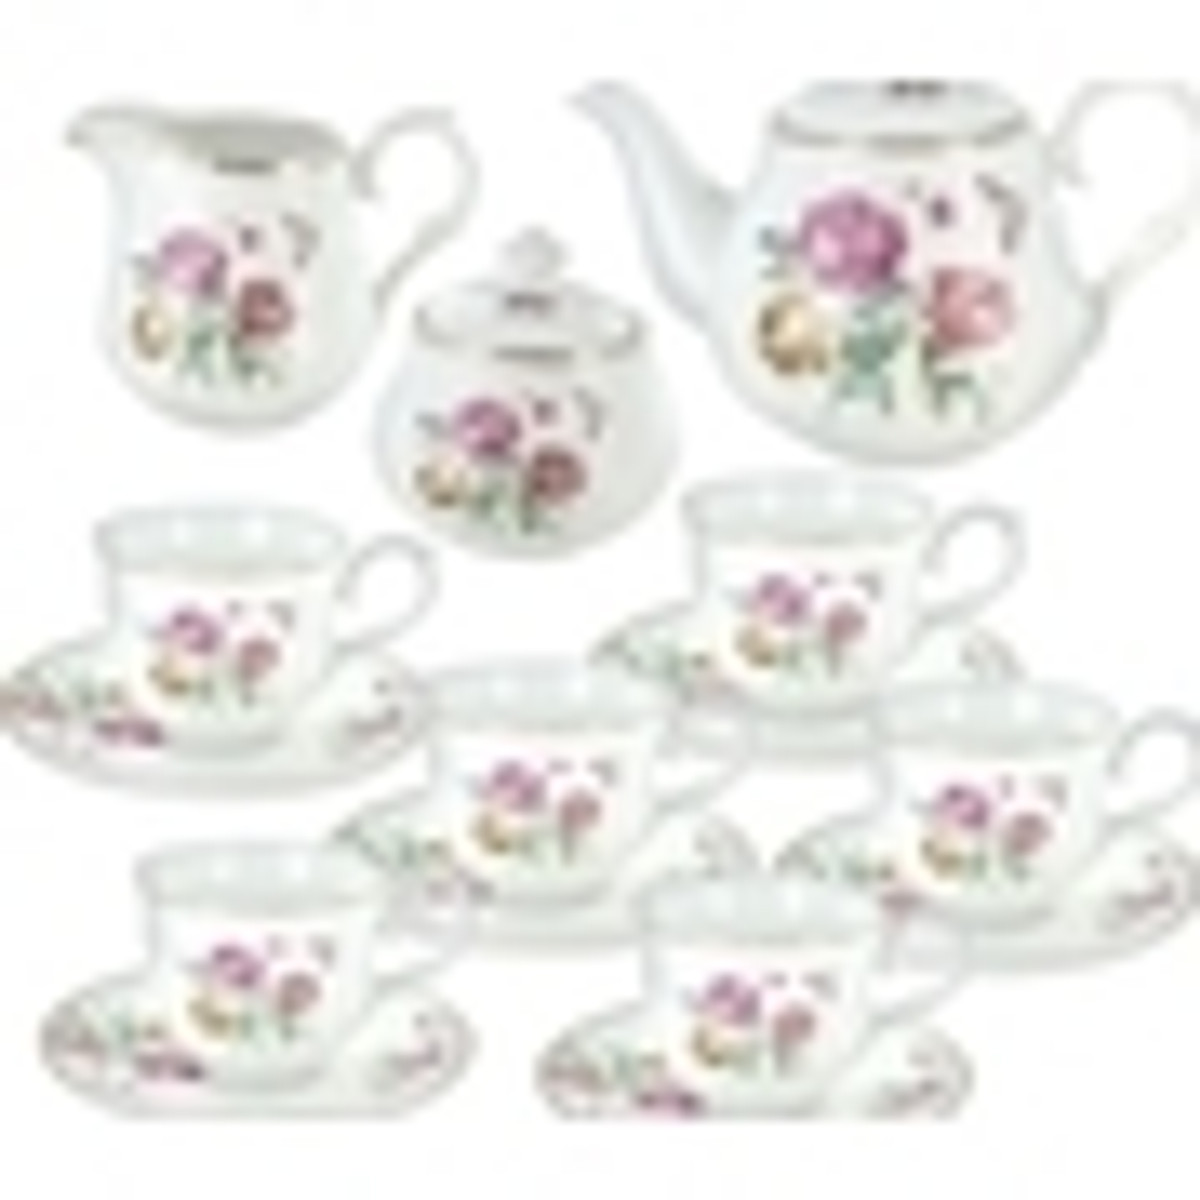 English Tea Store Brand Porcelain Tea Sets